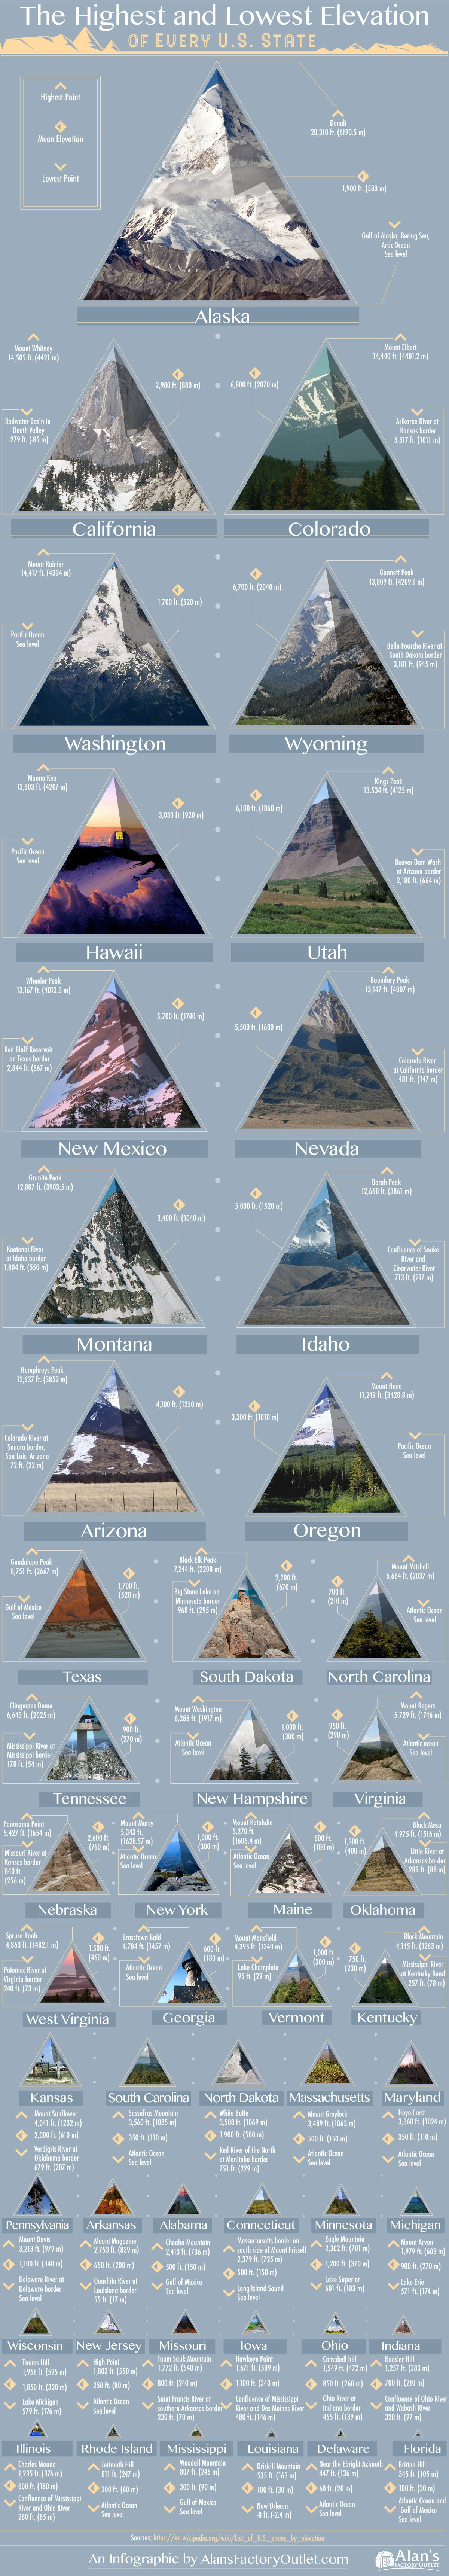 The Highest and Lowest Elevation of Every U.S. State #infographic